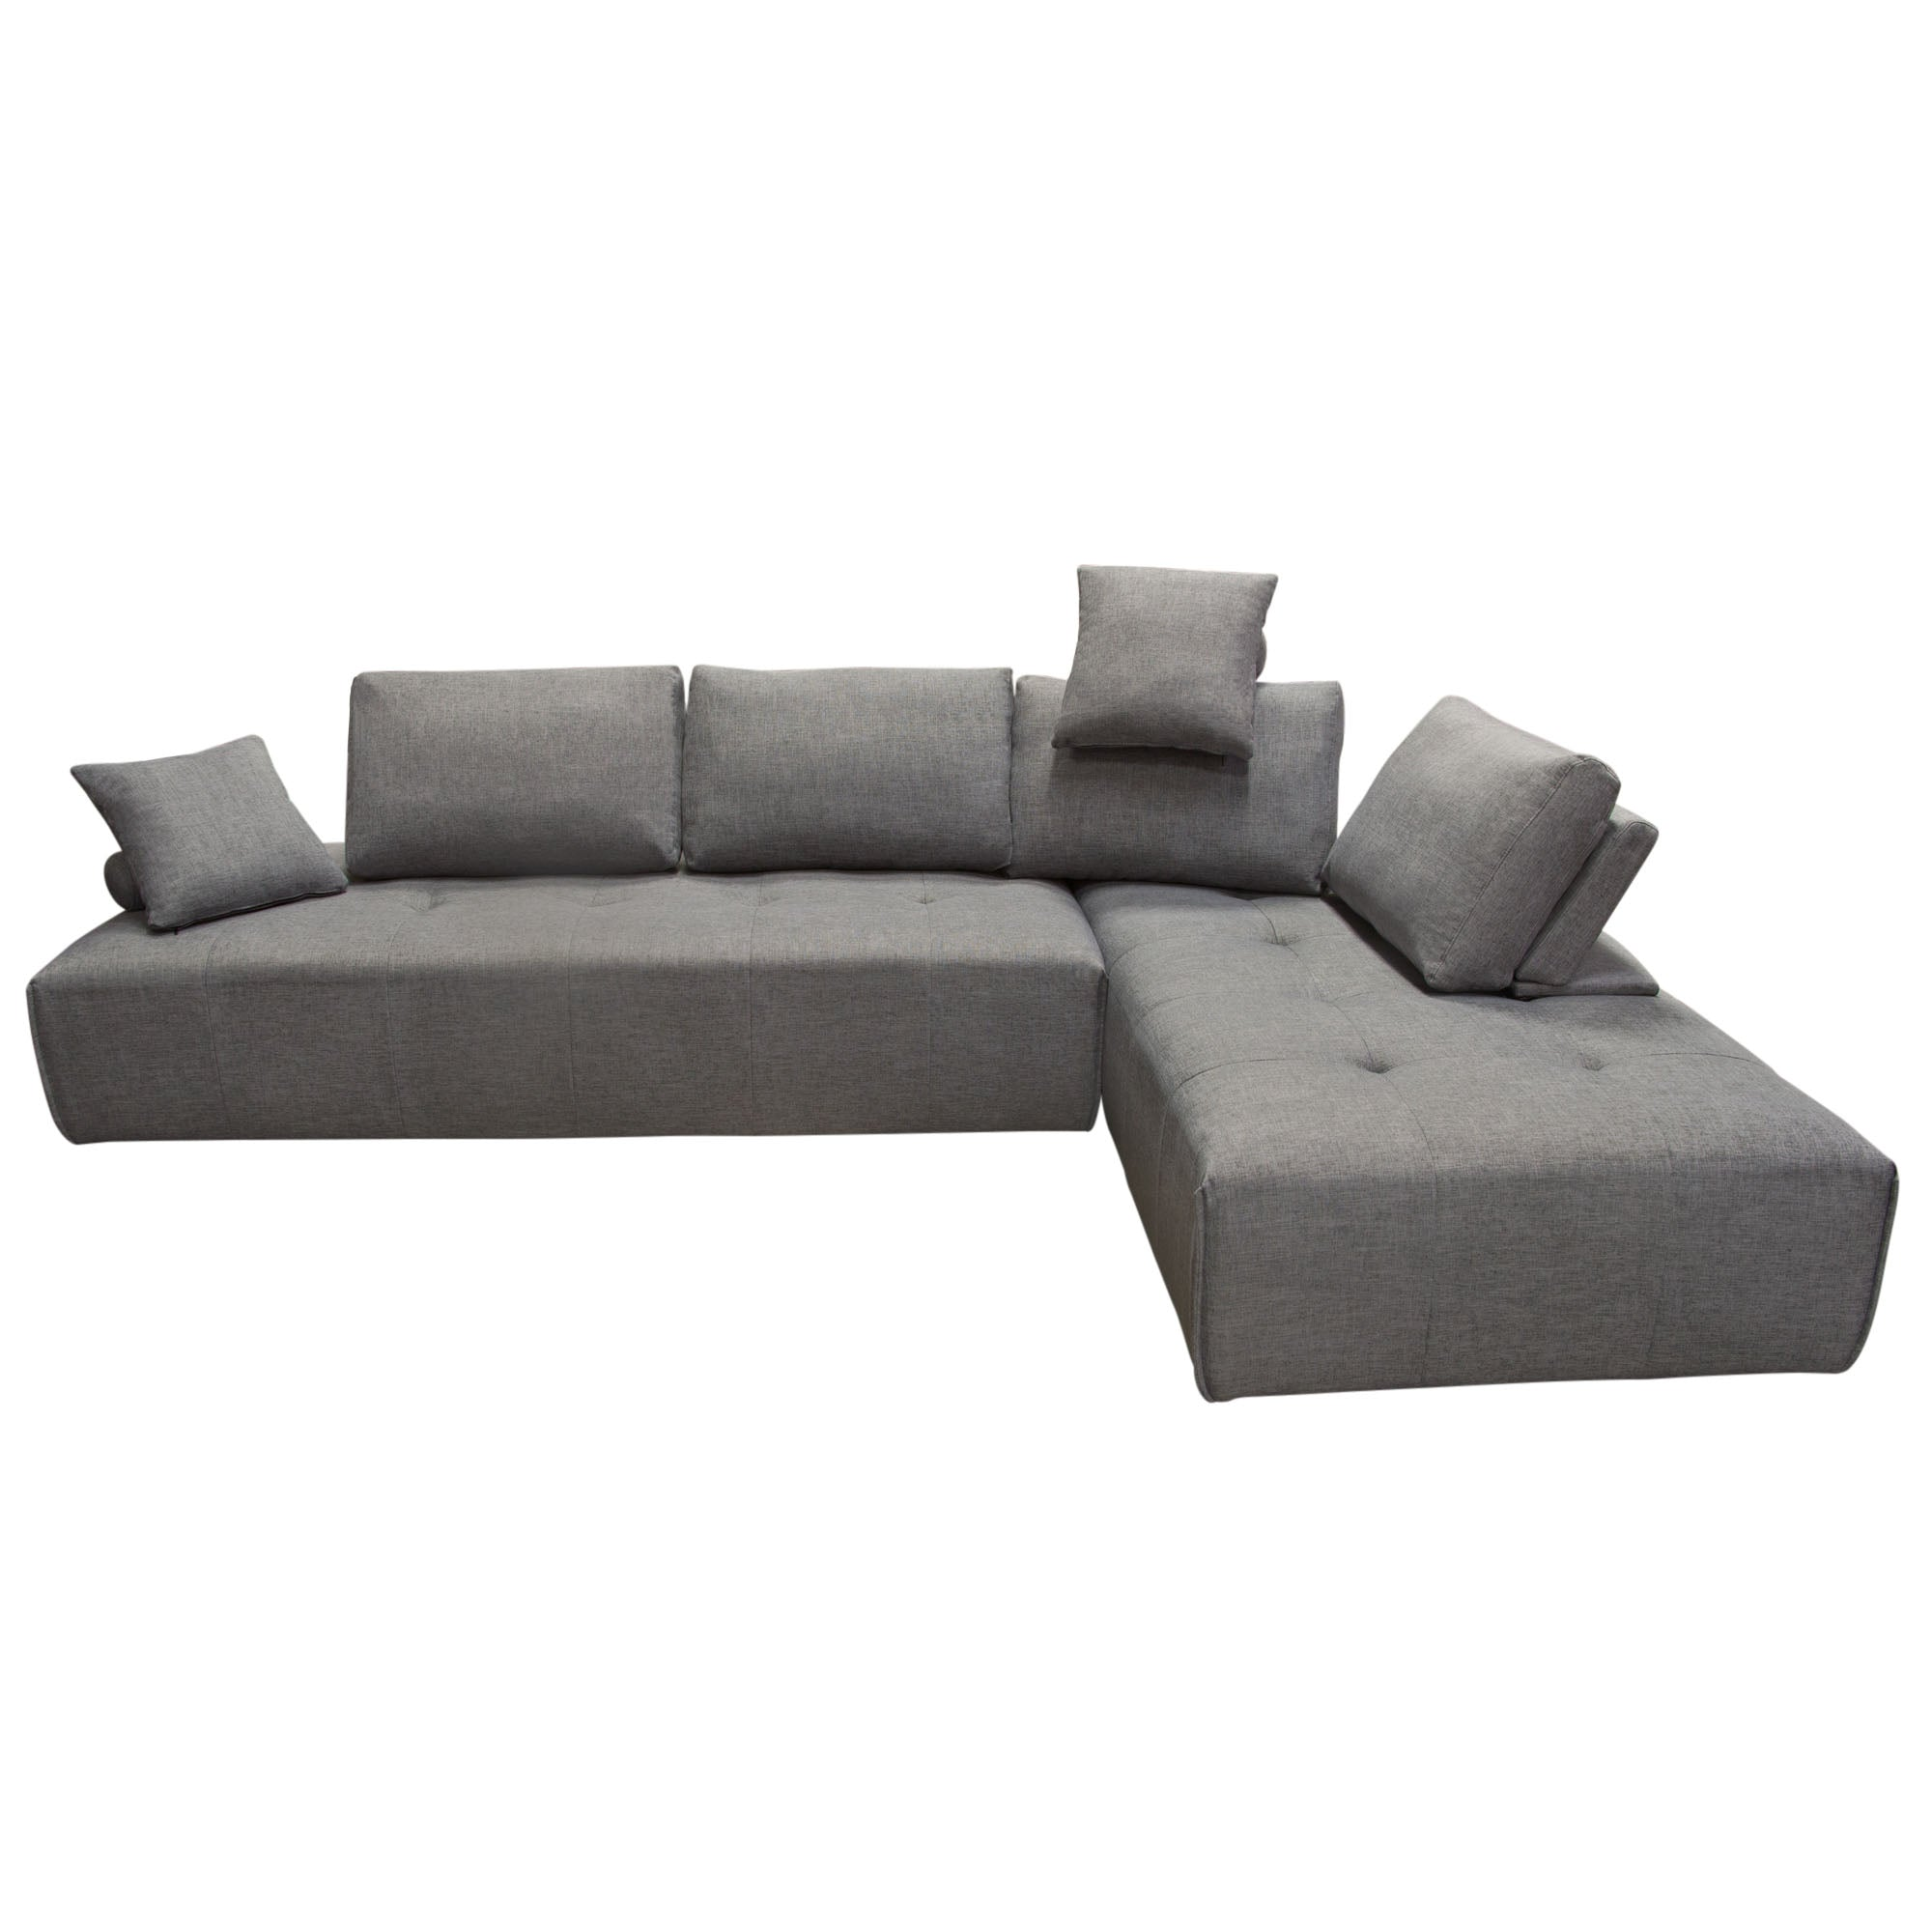 Cloud 2PC Lounge Seating Platforms with Moveable Backrest Supports in Space  Grey Fabric